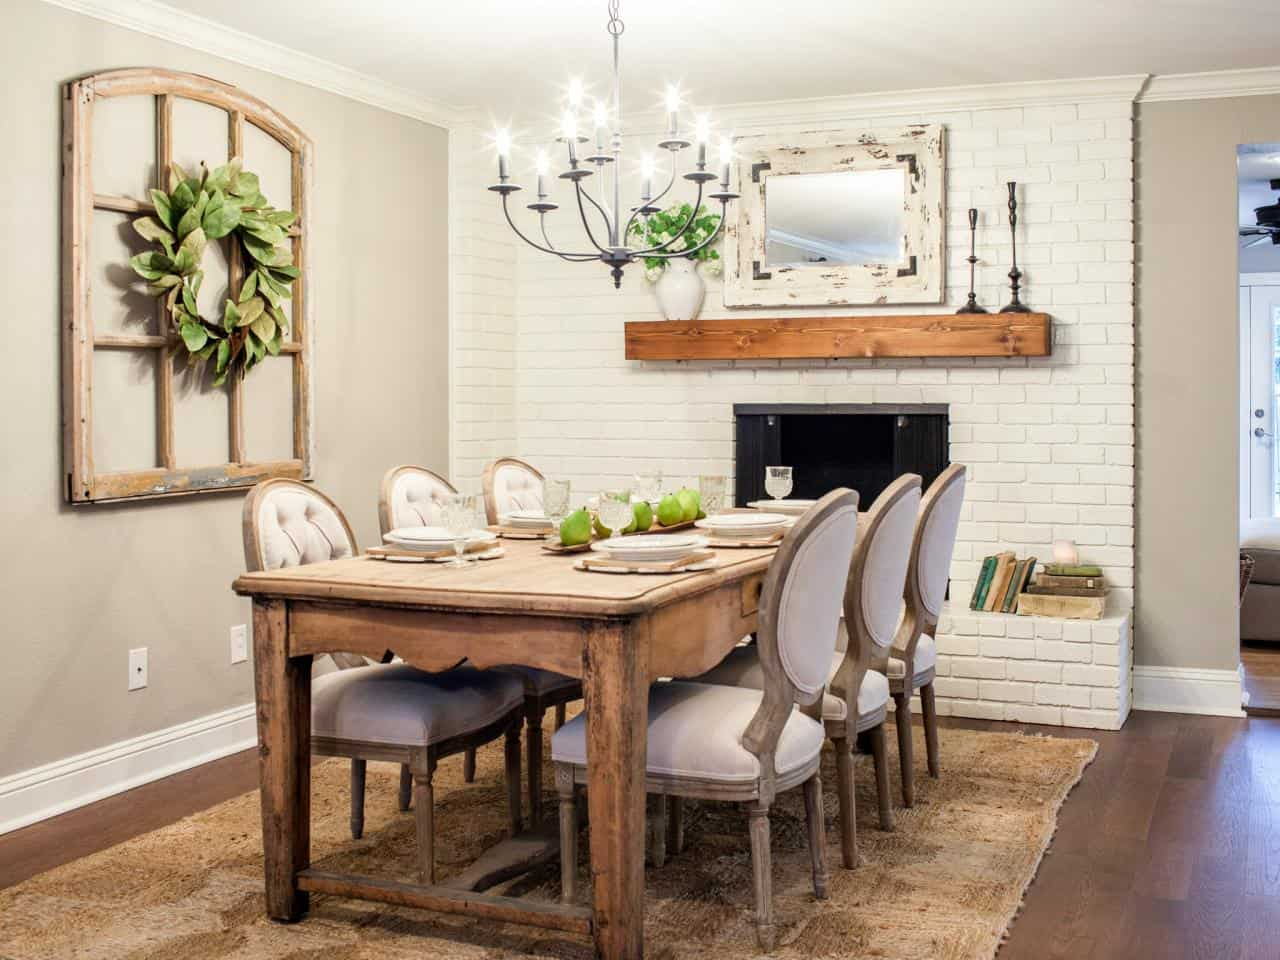 entrancing dining room vintage styling design ideas showcasing awesome fireplace complete marvelous rustic dining table also comfortable neutral dining chair decoration best leather conditioner for ch